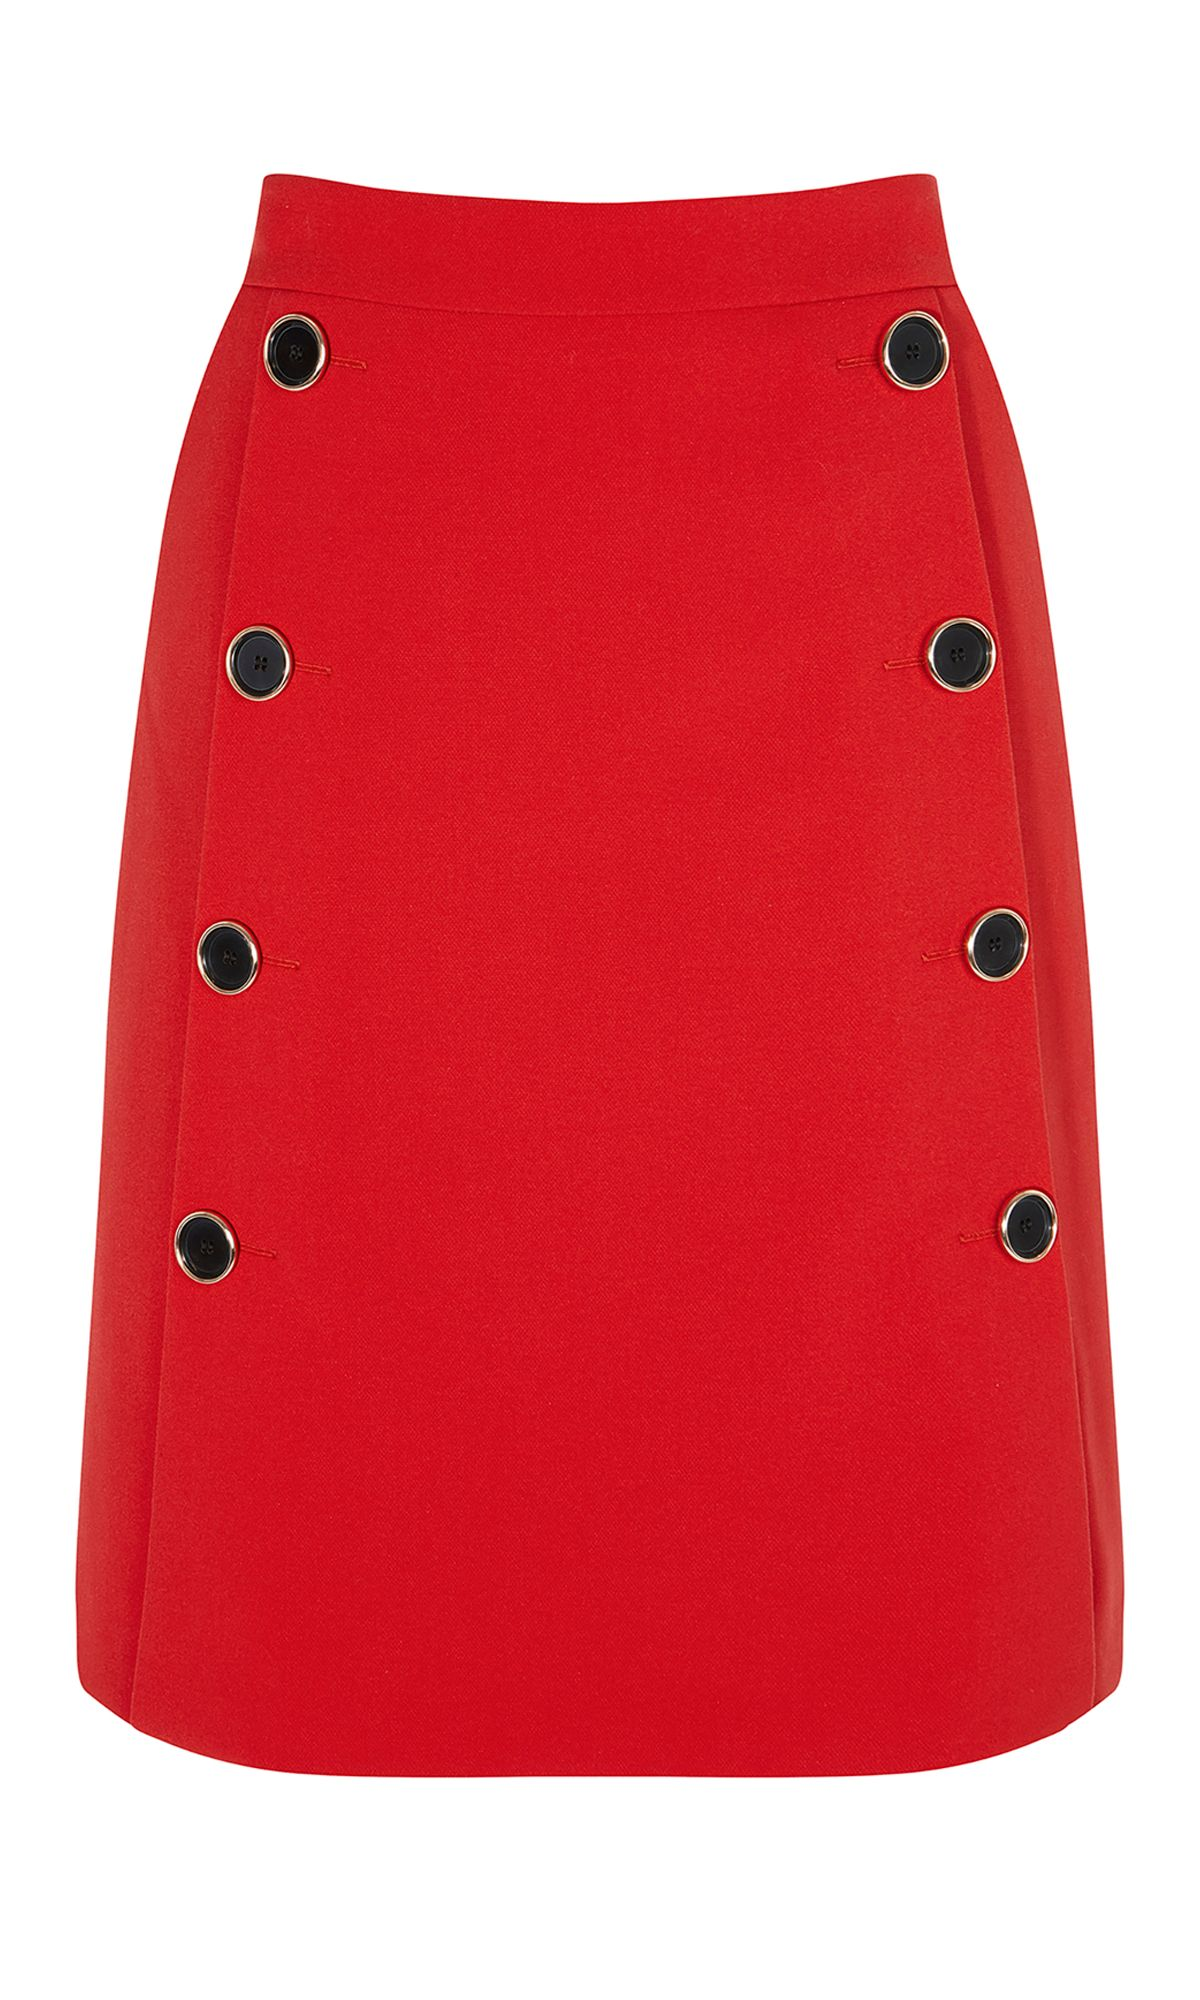 Karen Millen Red Button A-Line Skirt, Red